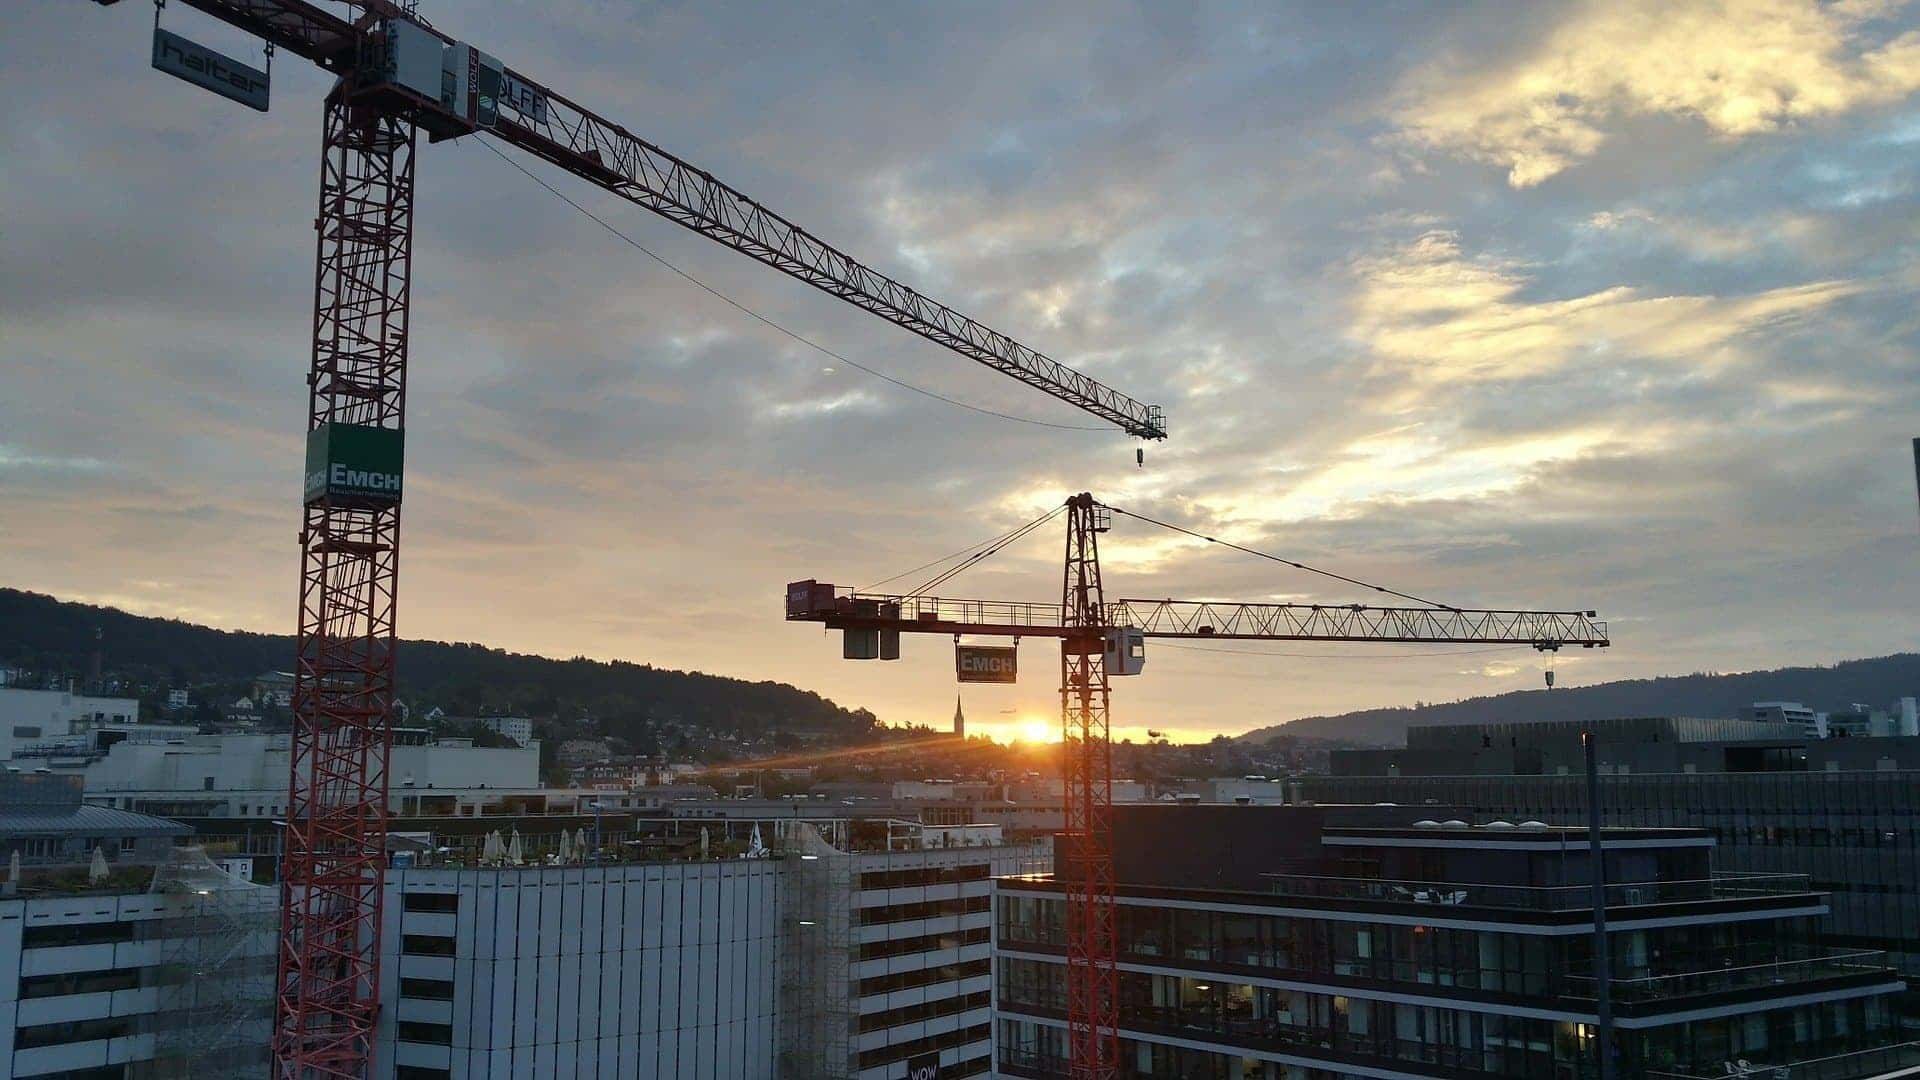 Sunset Crane Hire